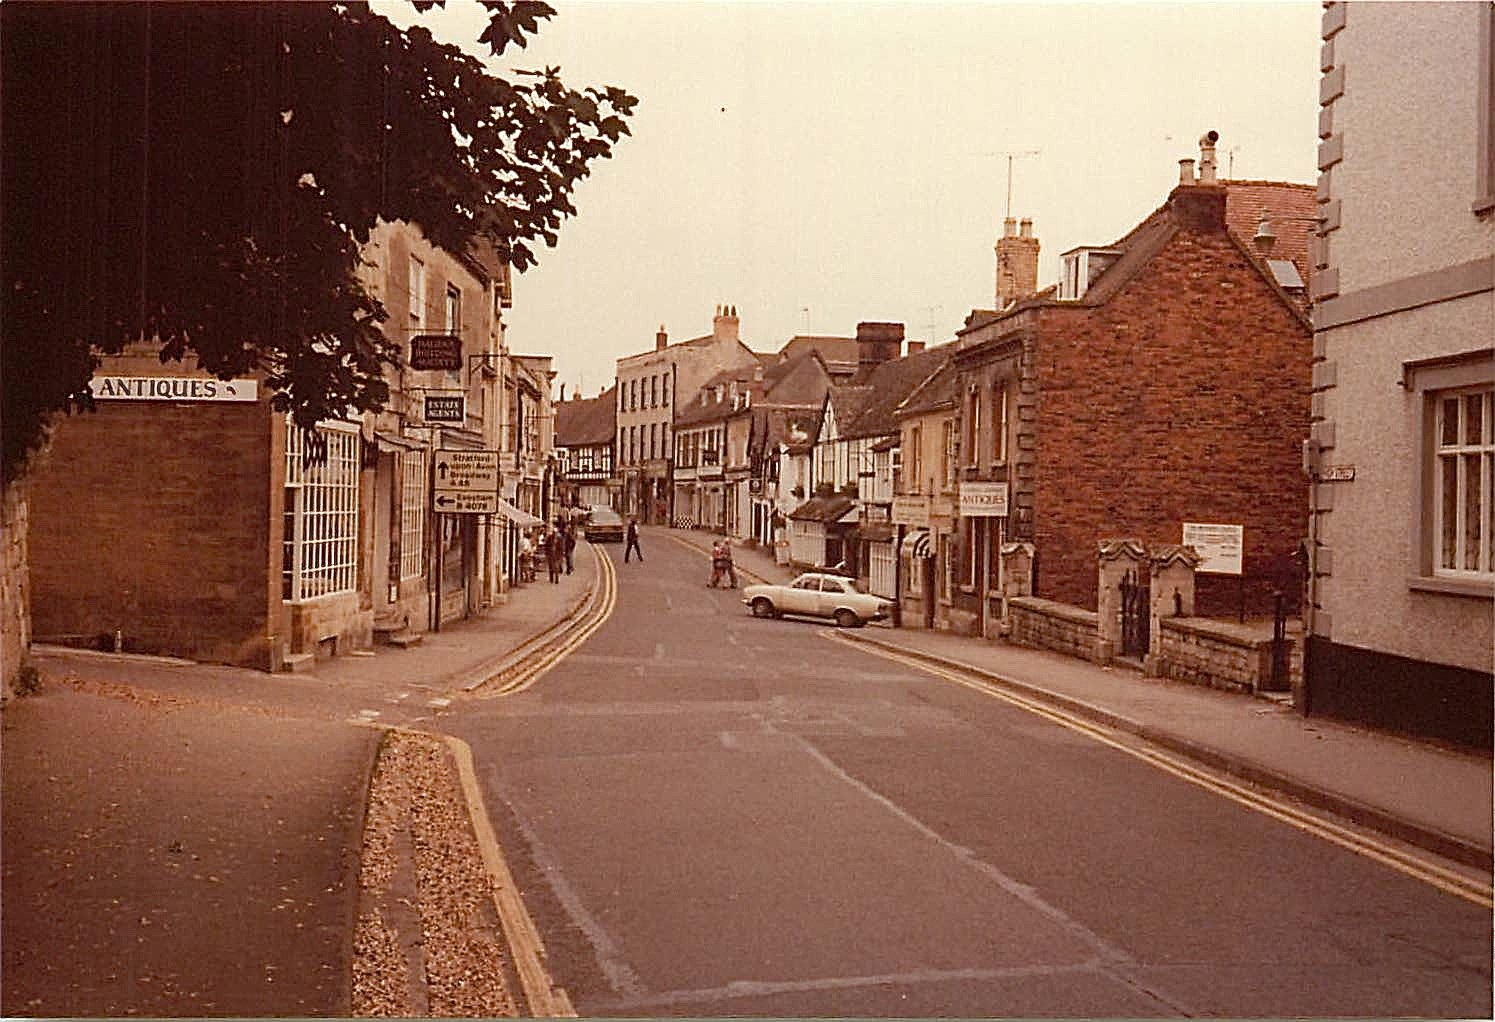 Cotswolds, England, 1979